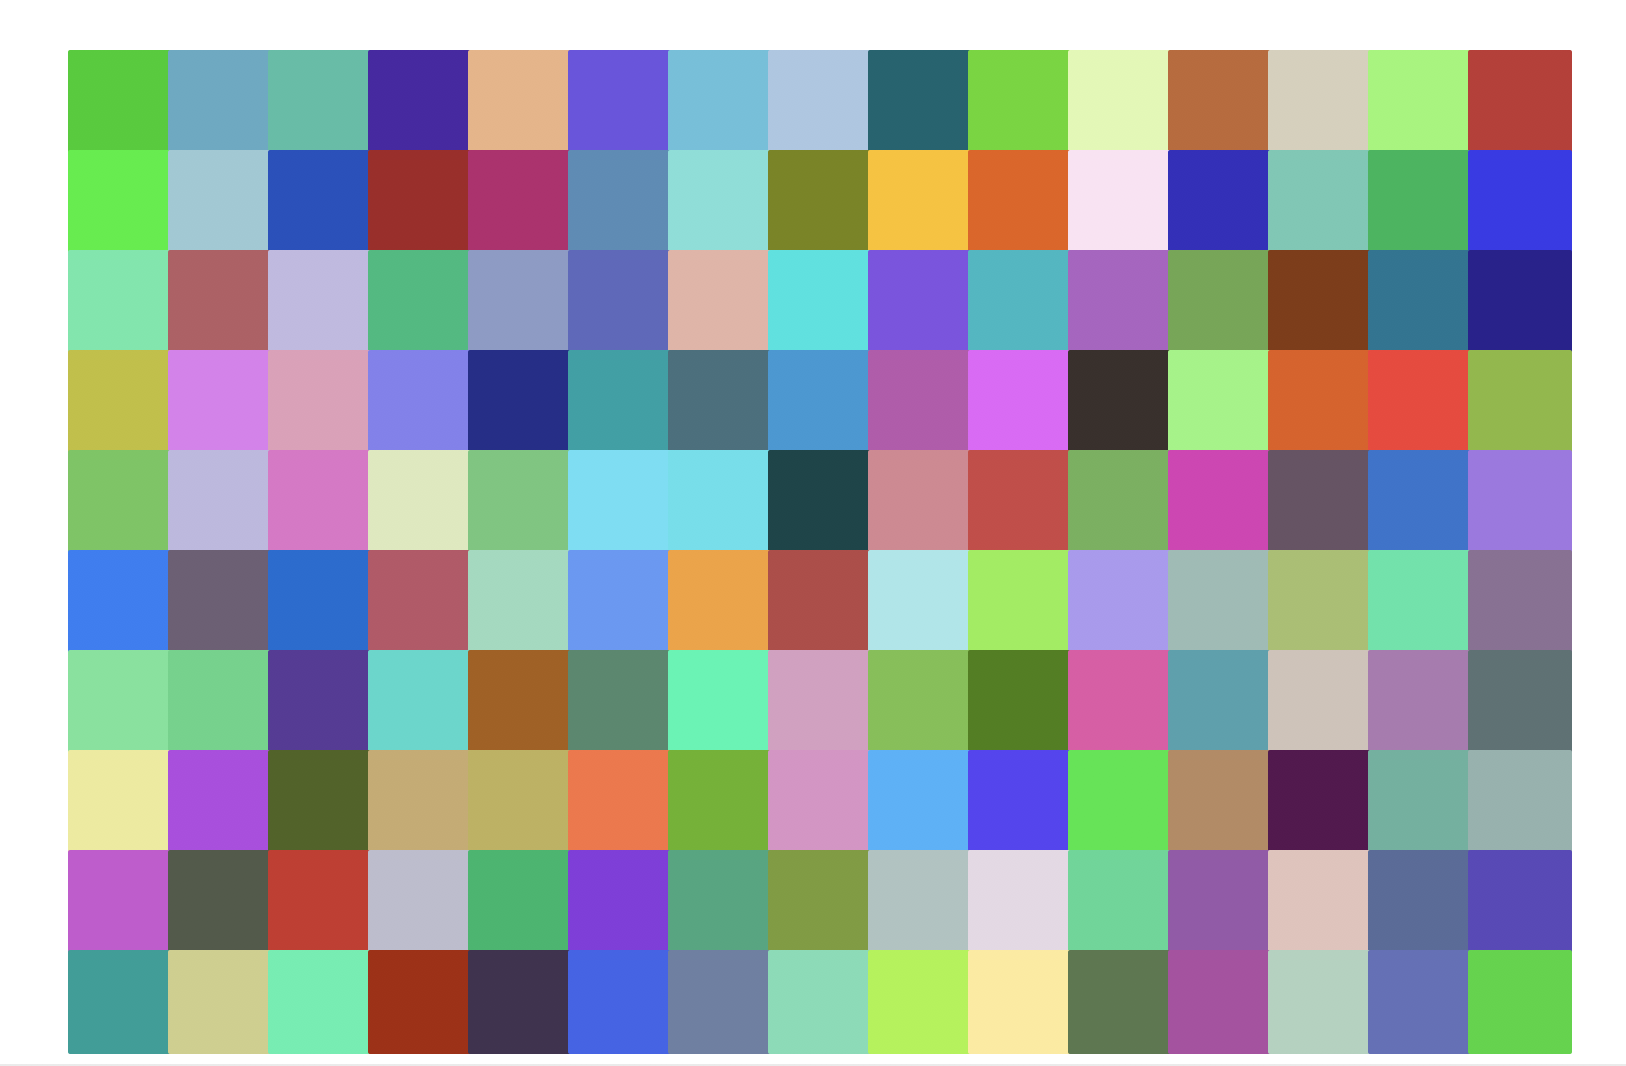 Another grid of squares, with 10 rows and 15 columns. This time, there are no outlines, and each square has a random color.